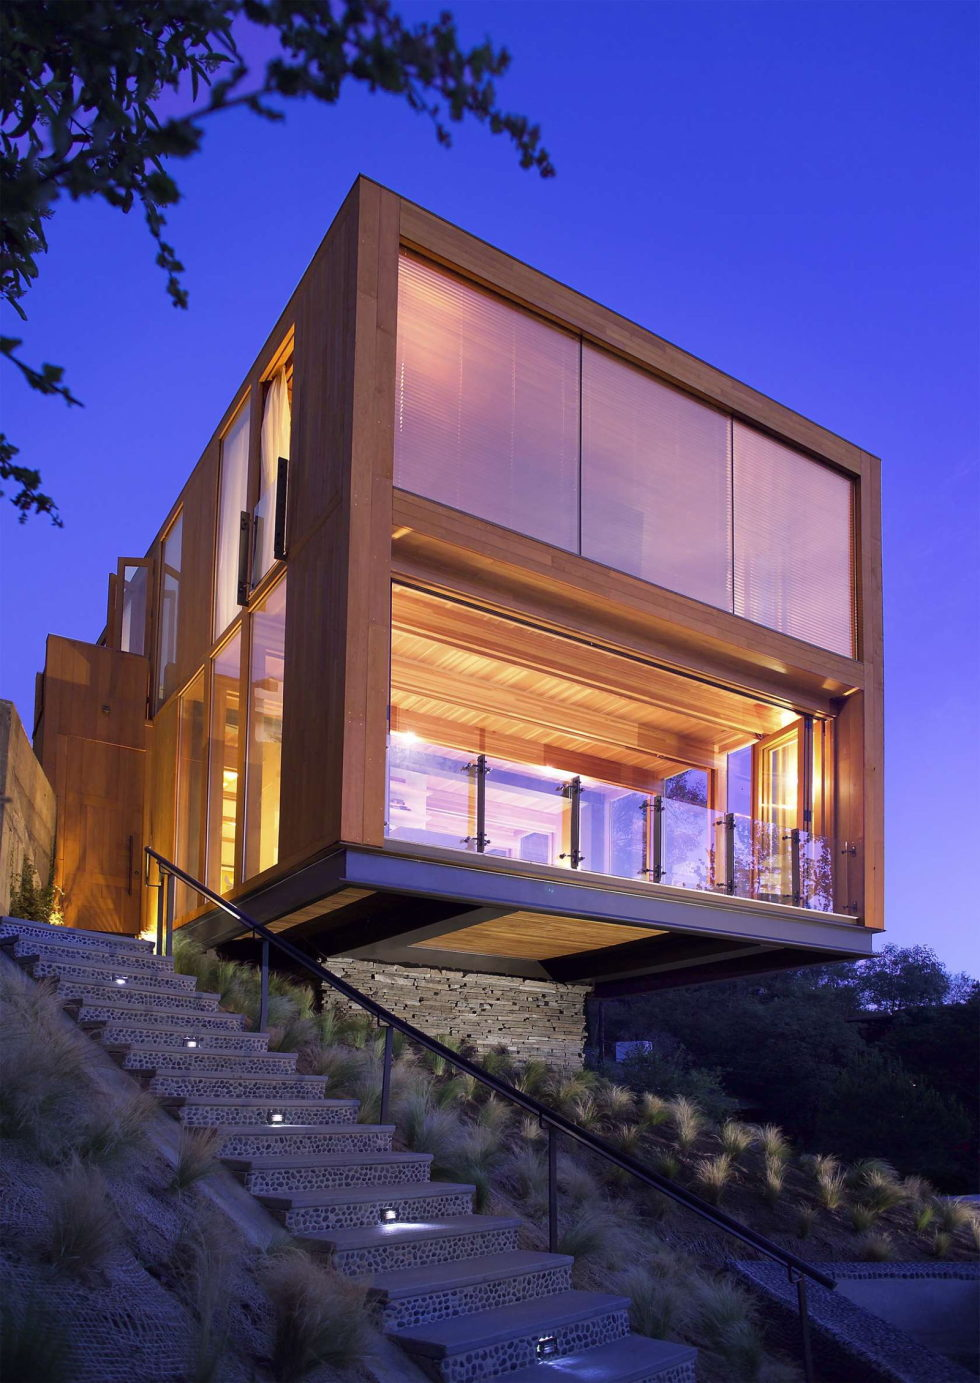 The Hollywood HIlls Box mansion in Los Angeles 1